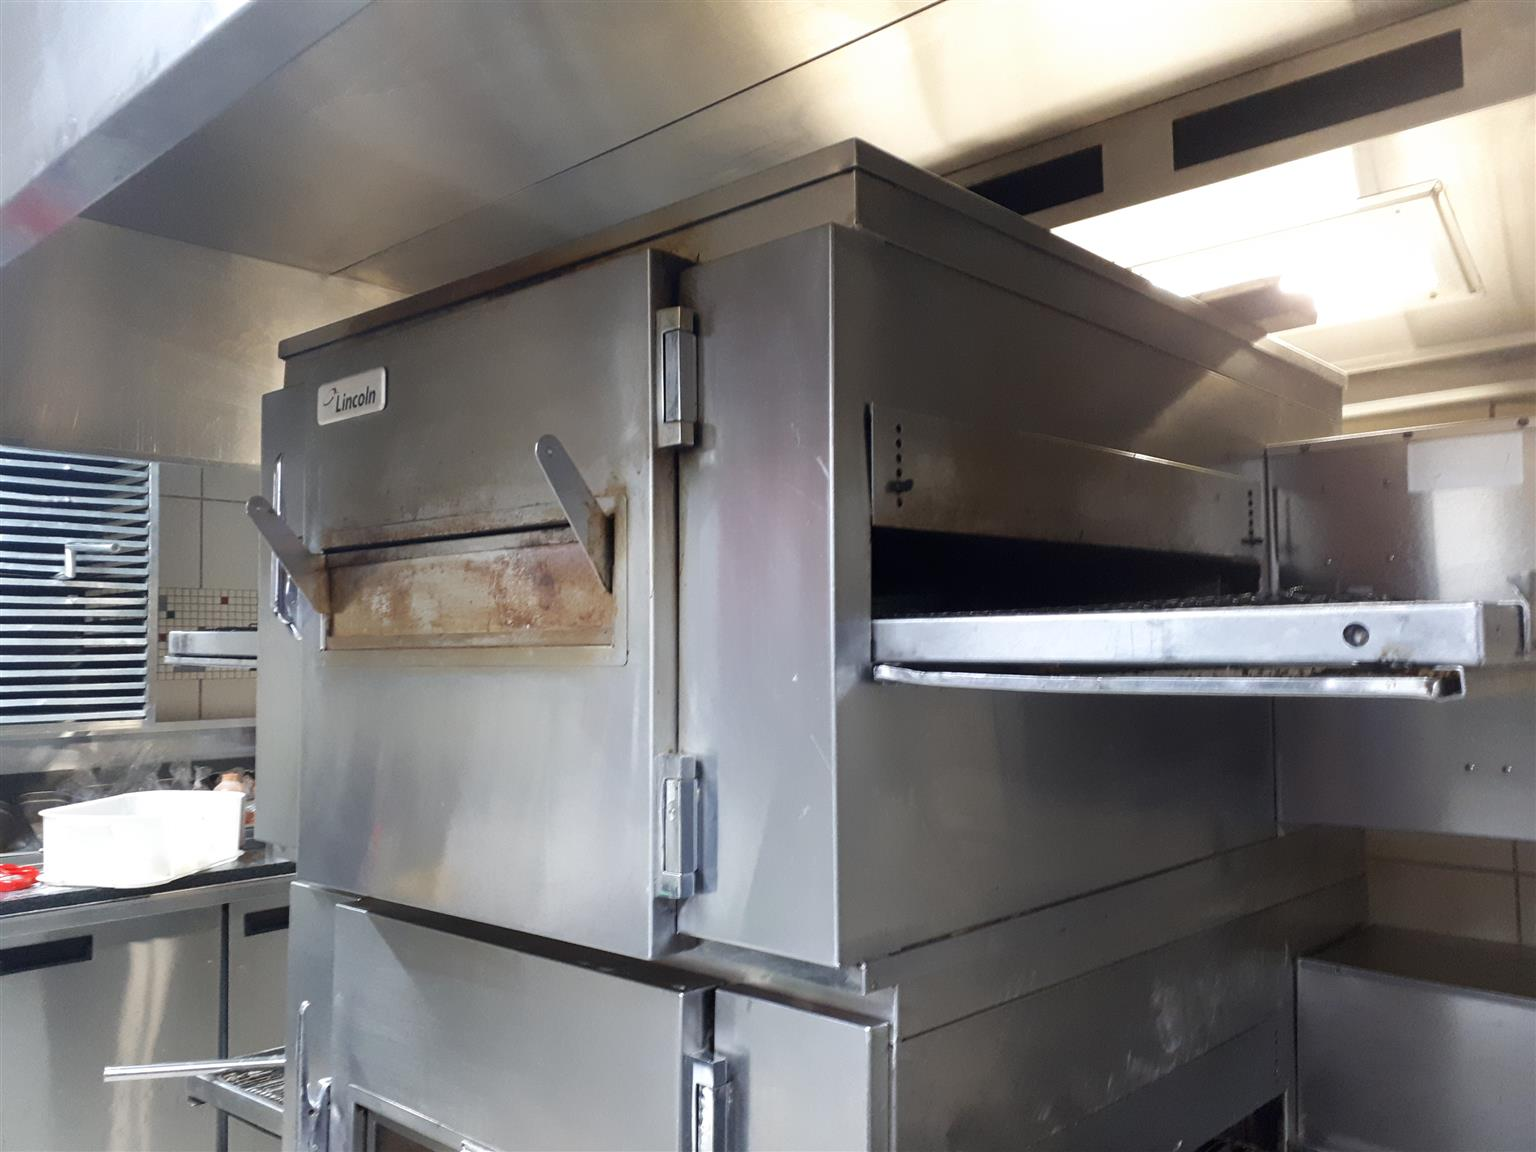 Pizzastand Oven Pizza Ovens From R40 000 To R80 000 Junk Mail